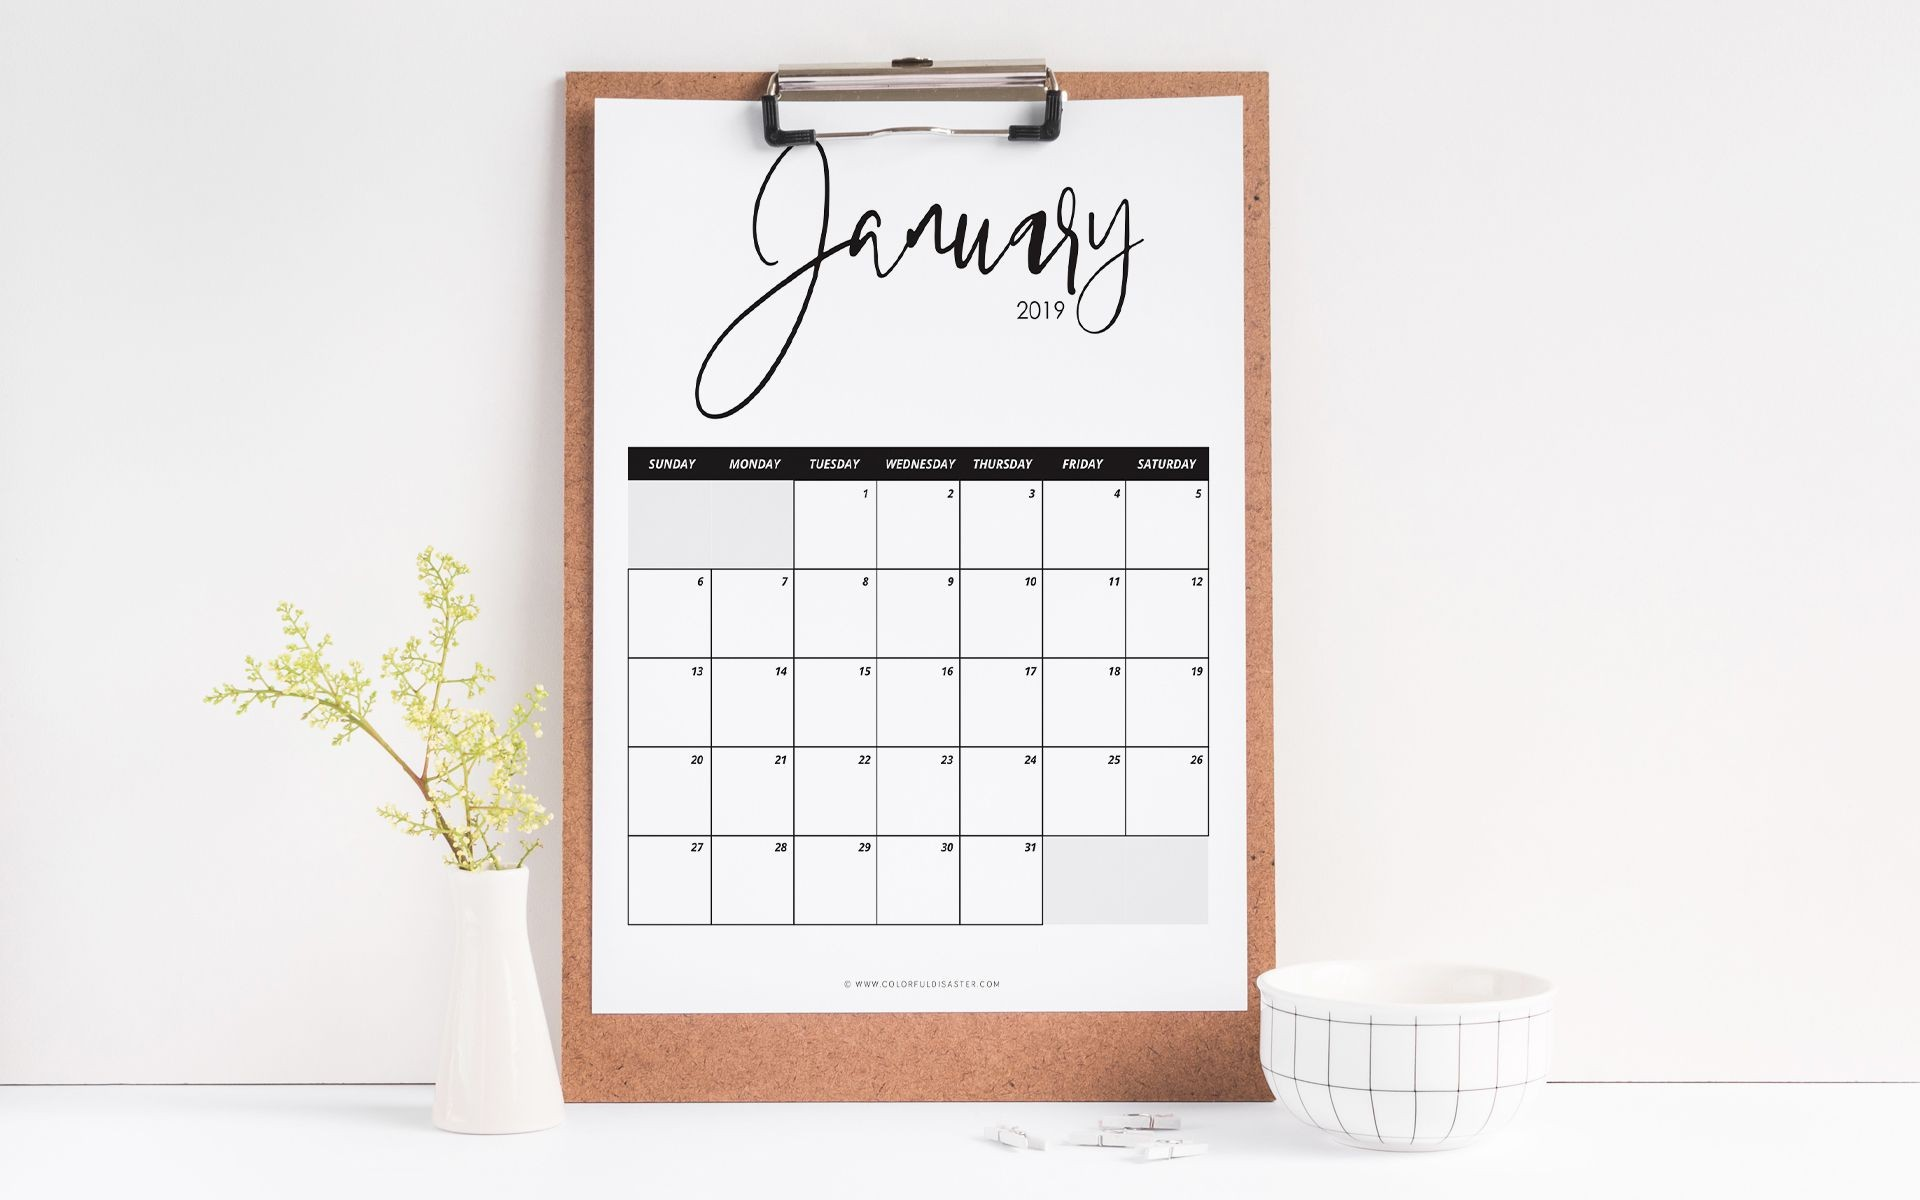 A January 2019 calendar with a plant and bowl